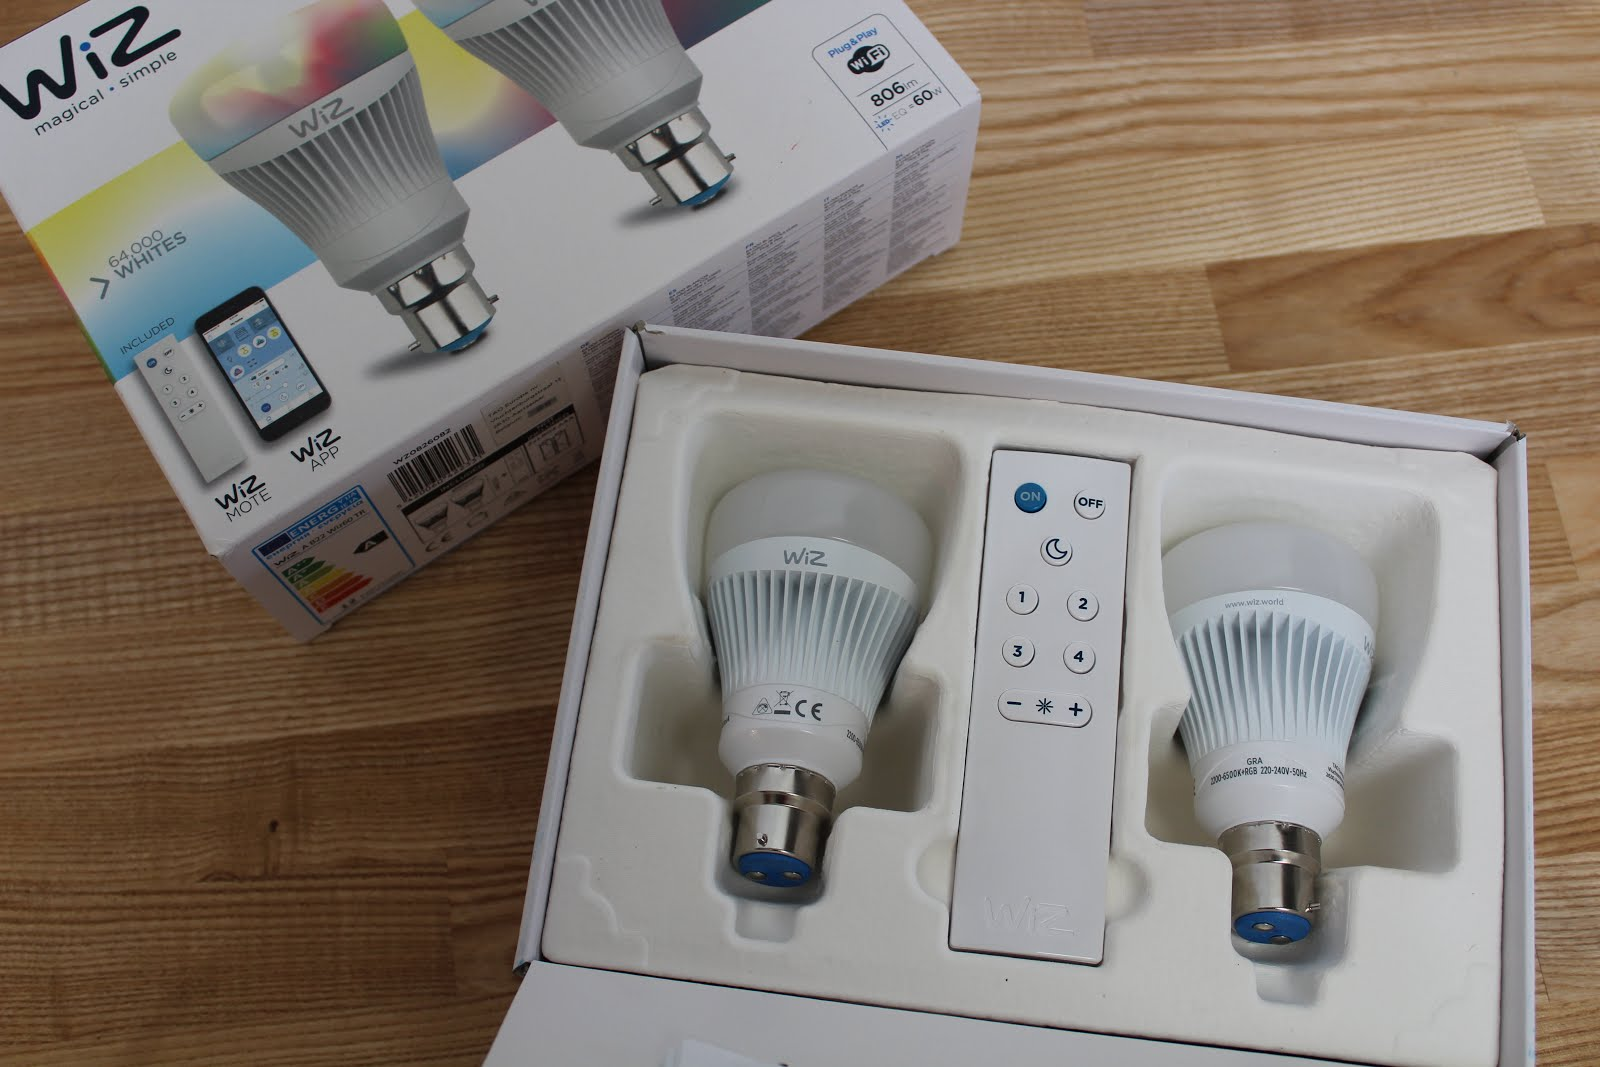 Smart Light Bulbs in Box